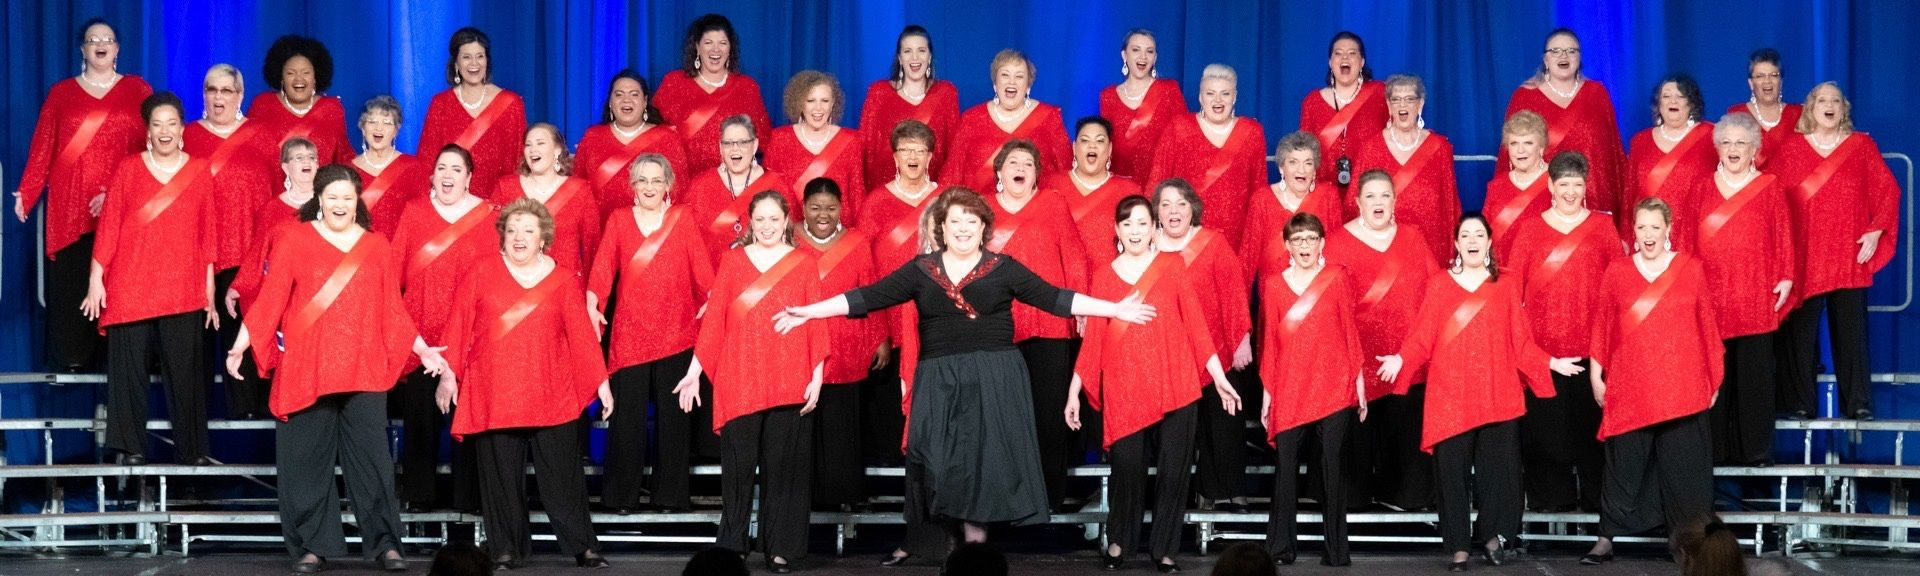 Dundalk Chorus: An A Cappella Chorus For Women of All Ages!